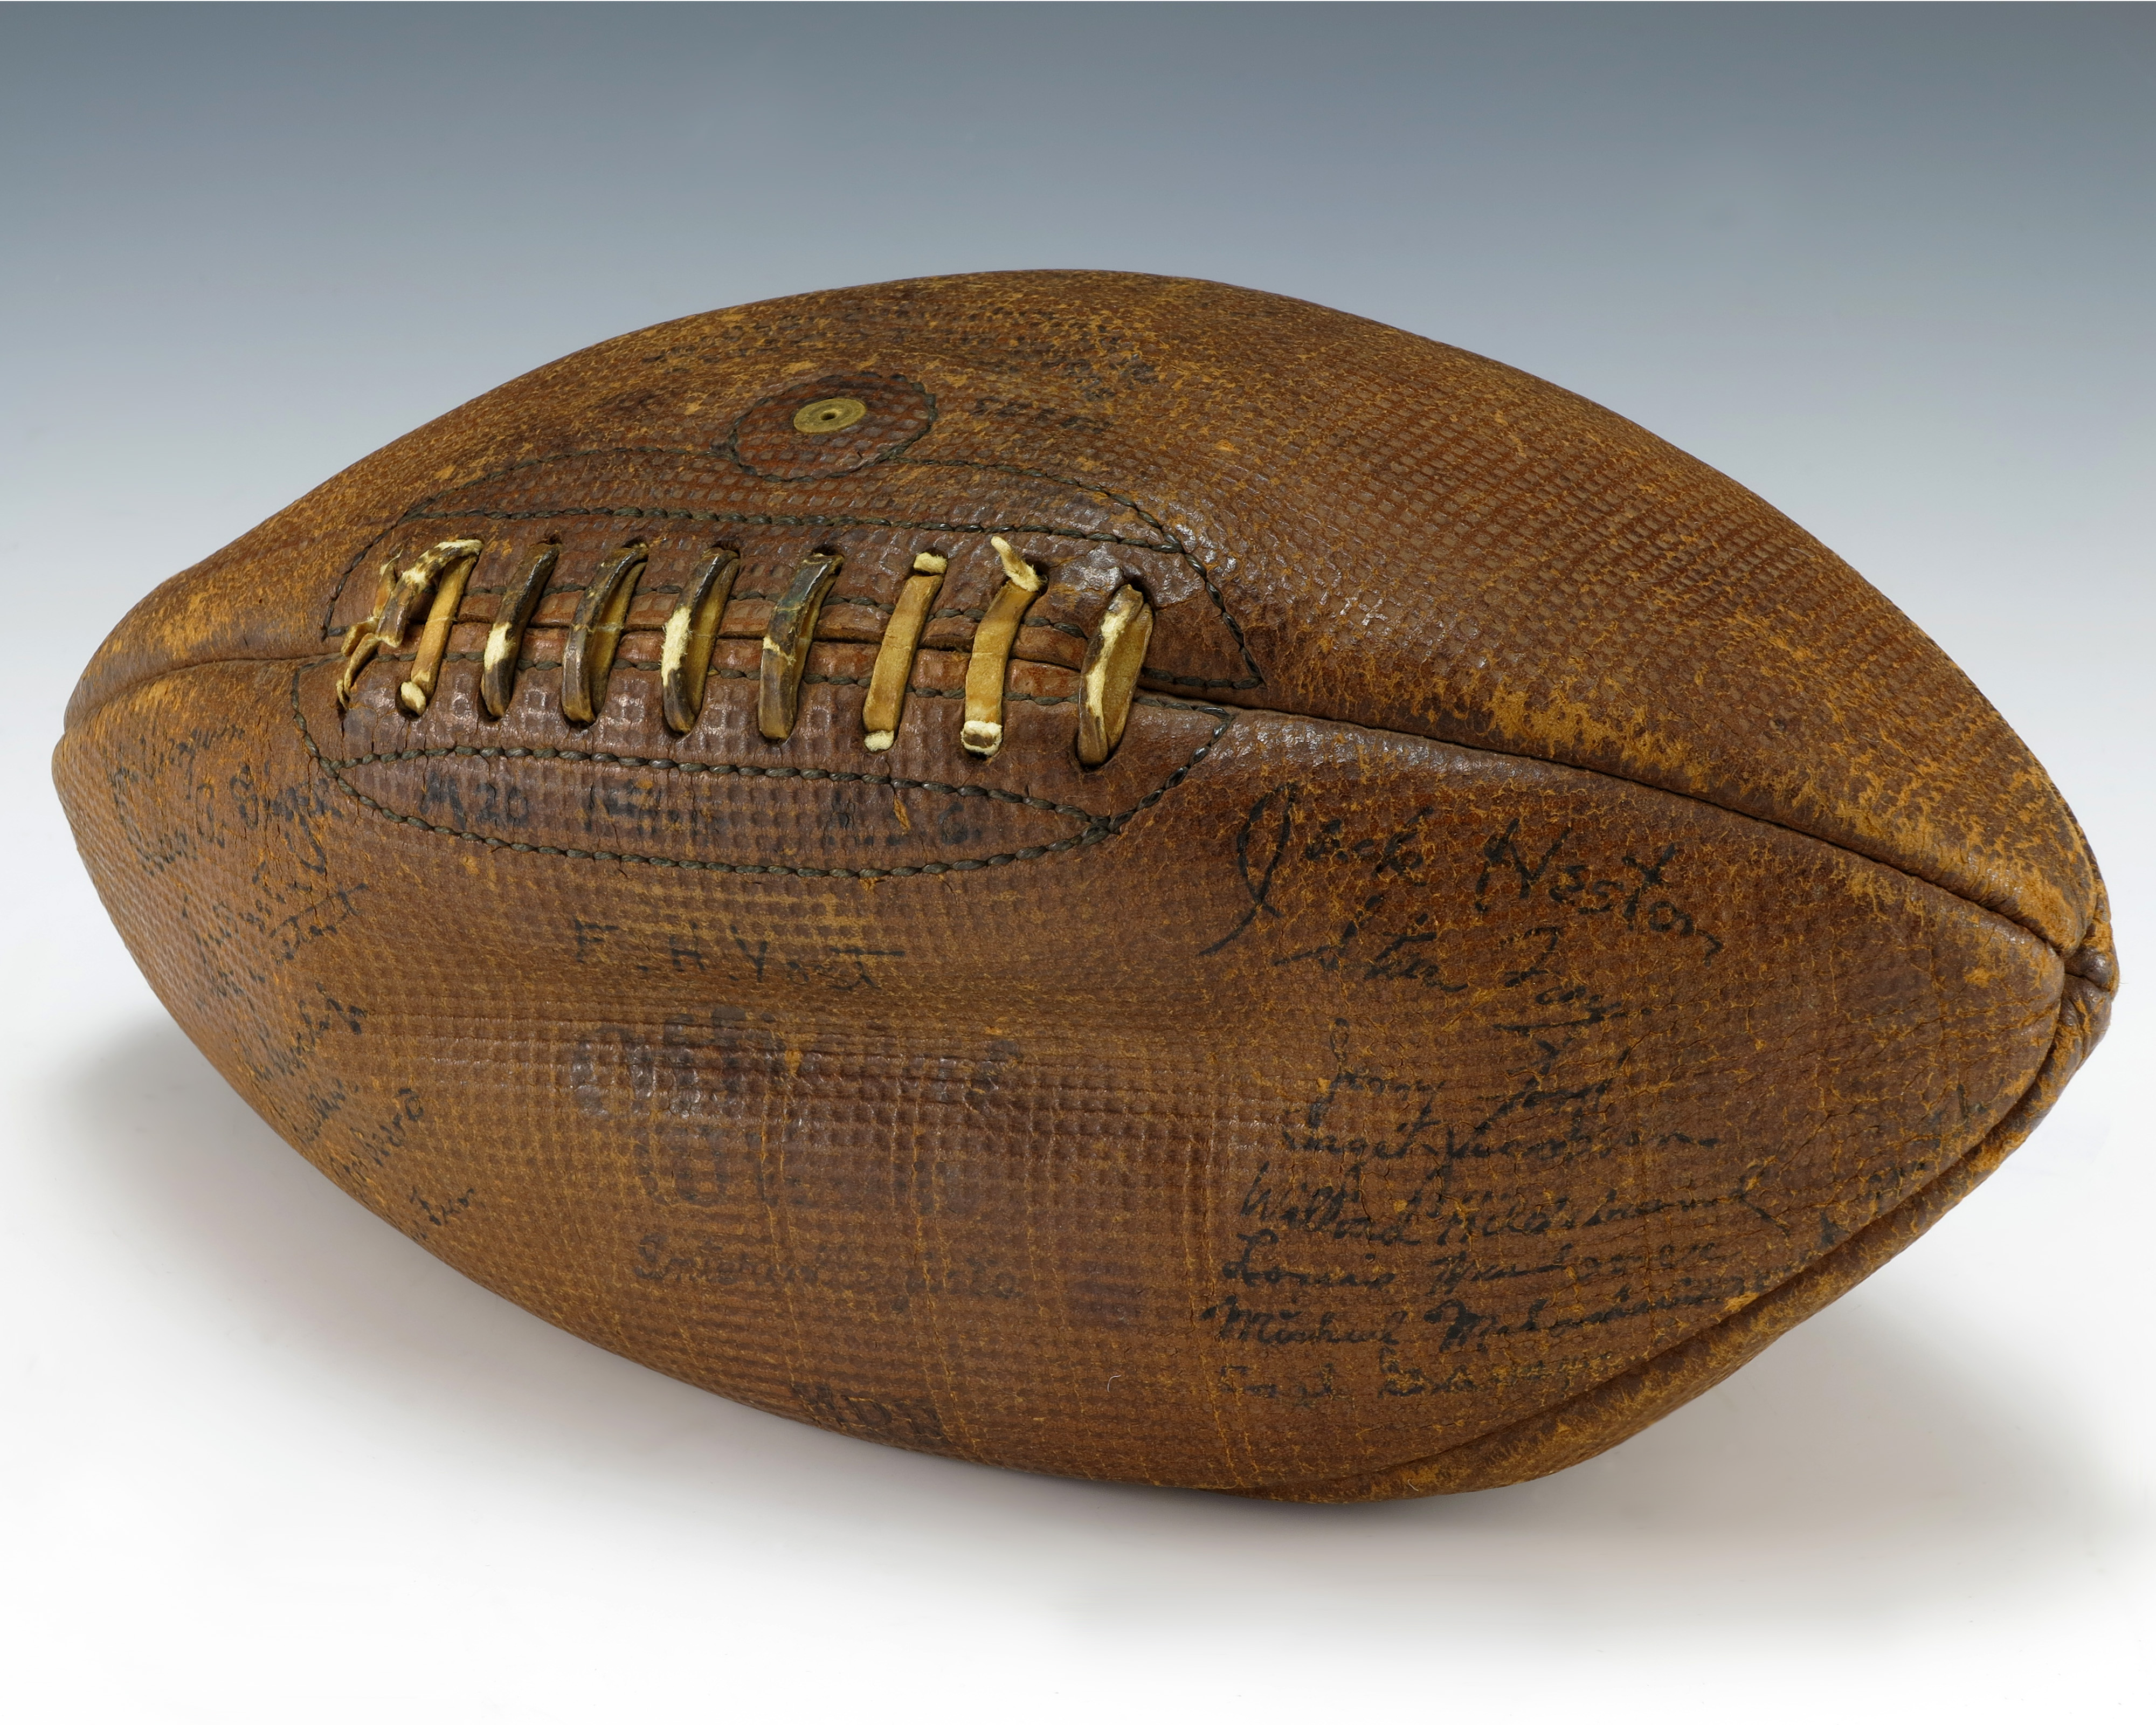 File:Football signed by Gerald R. Ford.jpg - Wikimedia Commons